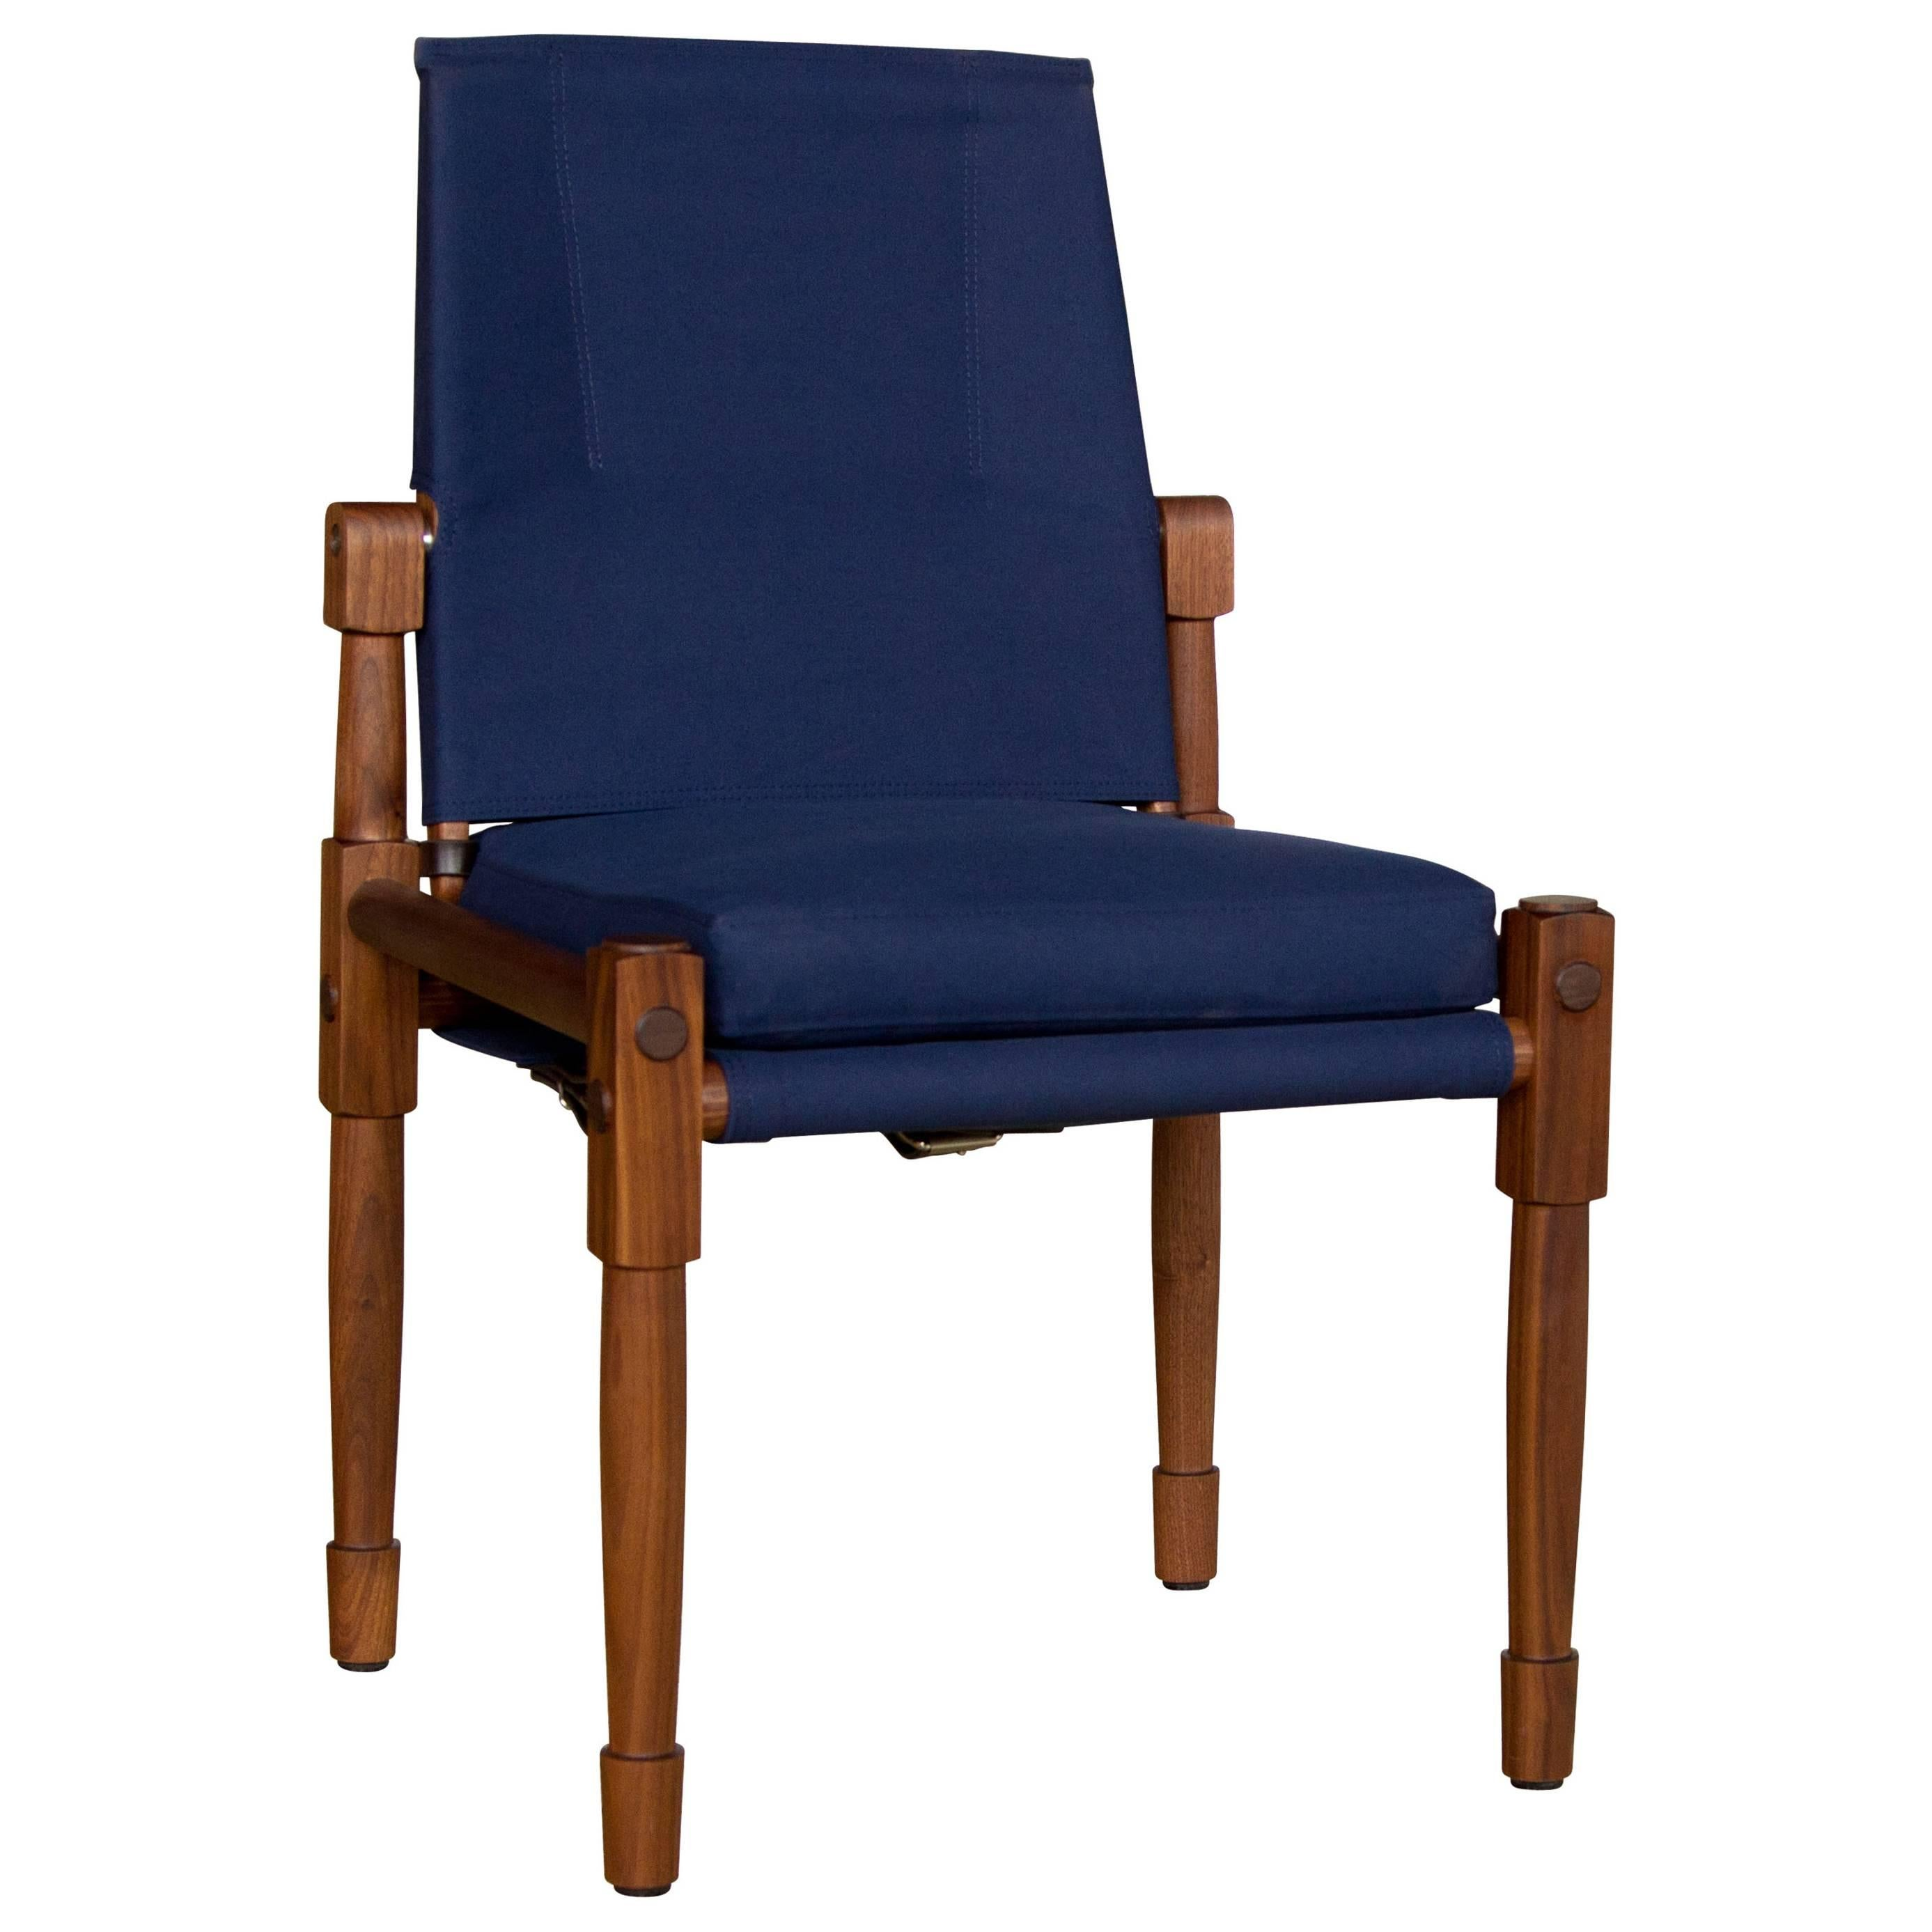 Navy Canvas Chatwin 02 Dining Chair - handcrafted by Richard Wrightman Design